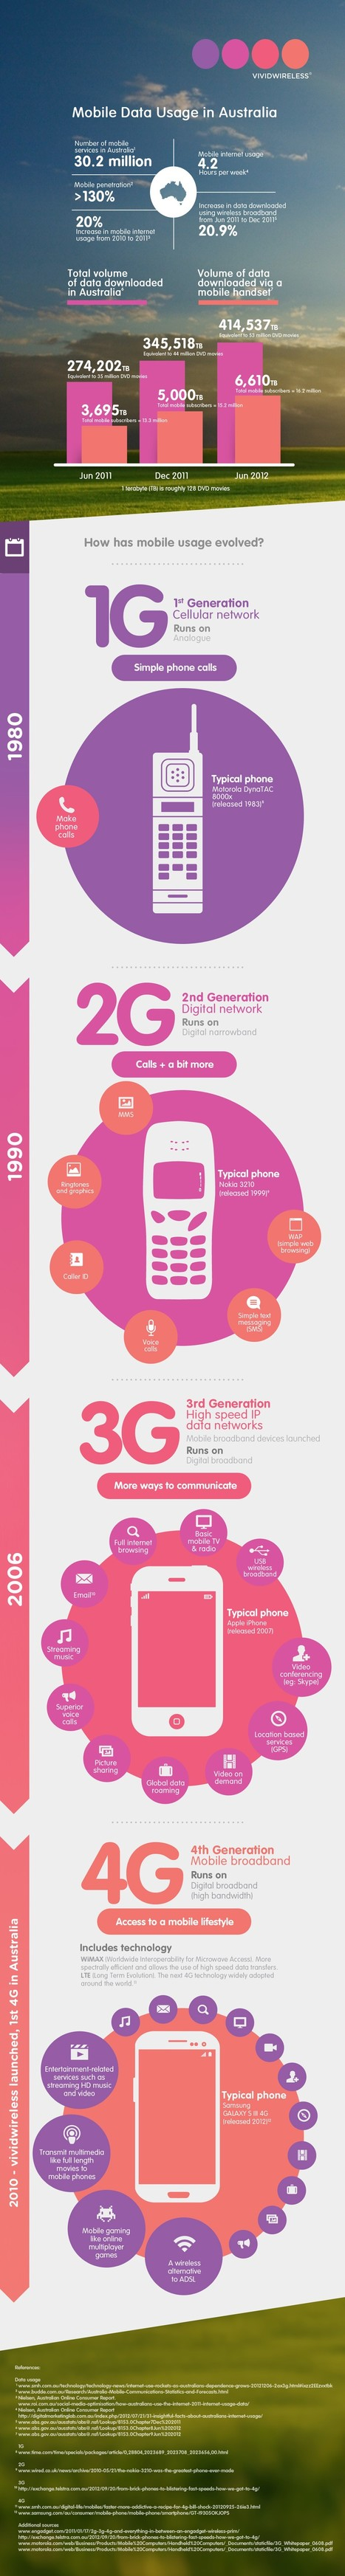 How Australia is Leading Mobile Users with 30 Million Numbers | All Infographics | Infographic news | Scoop.it